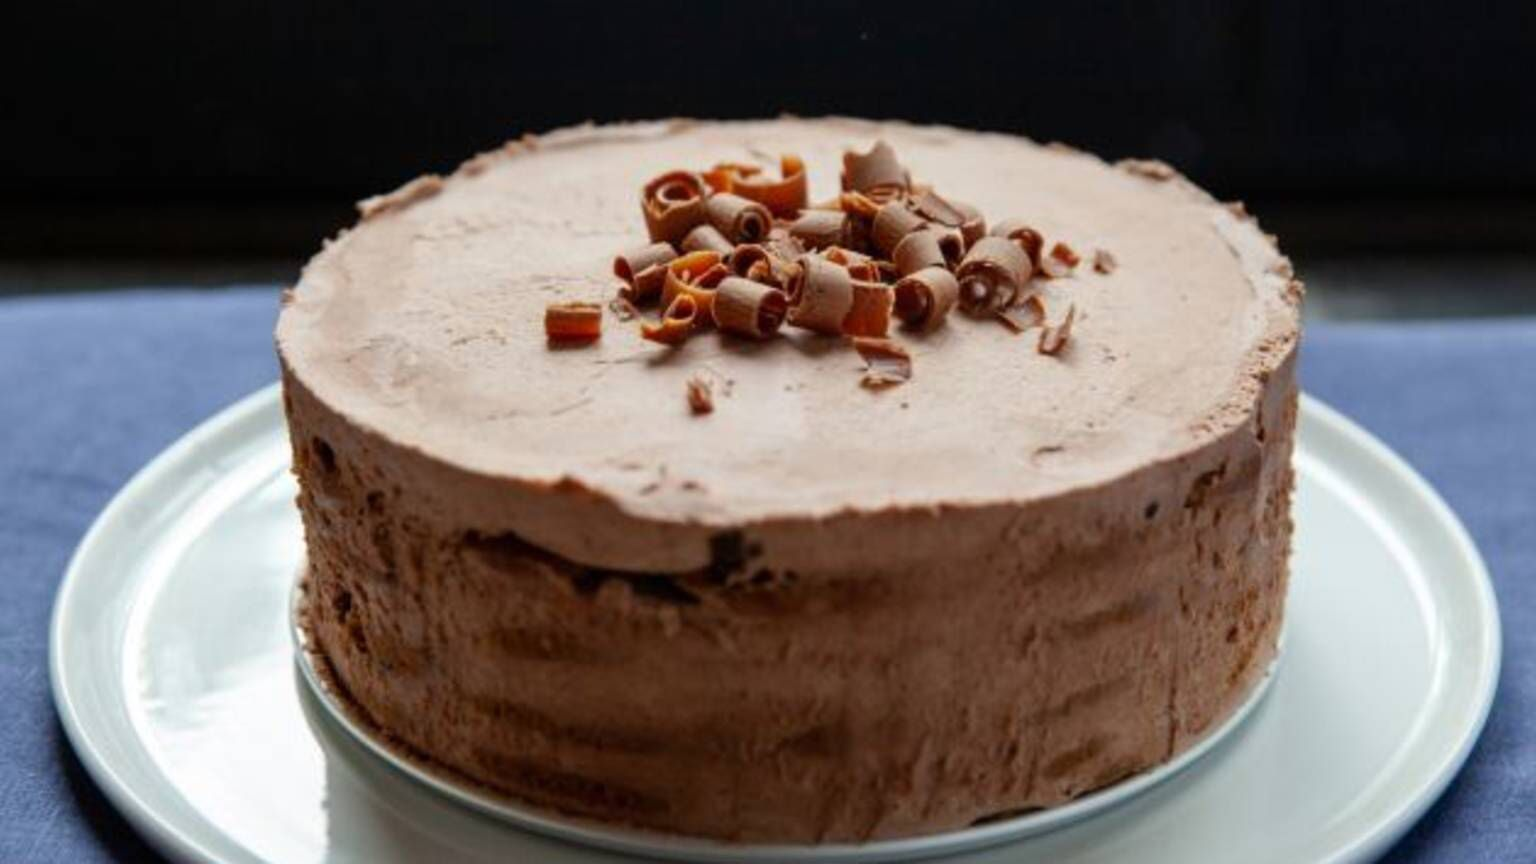 Mocha Chocolate Ice Box Cake With Ina Garten In 2020 Icebox Cake Chocolate Chip Cookies Mocha Chocolate